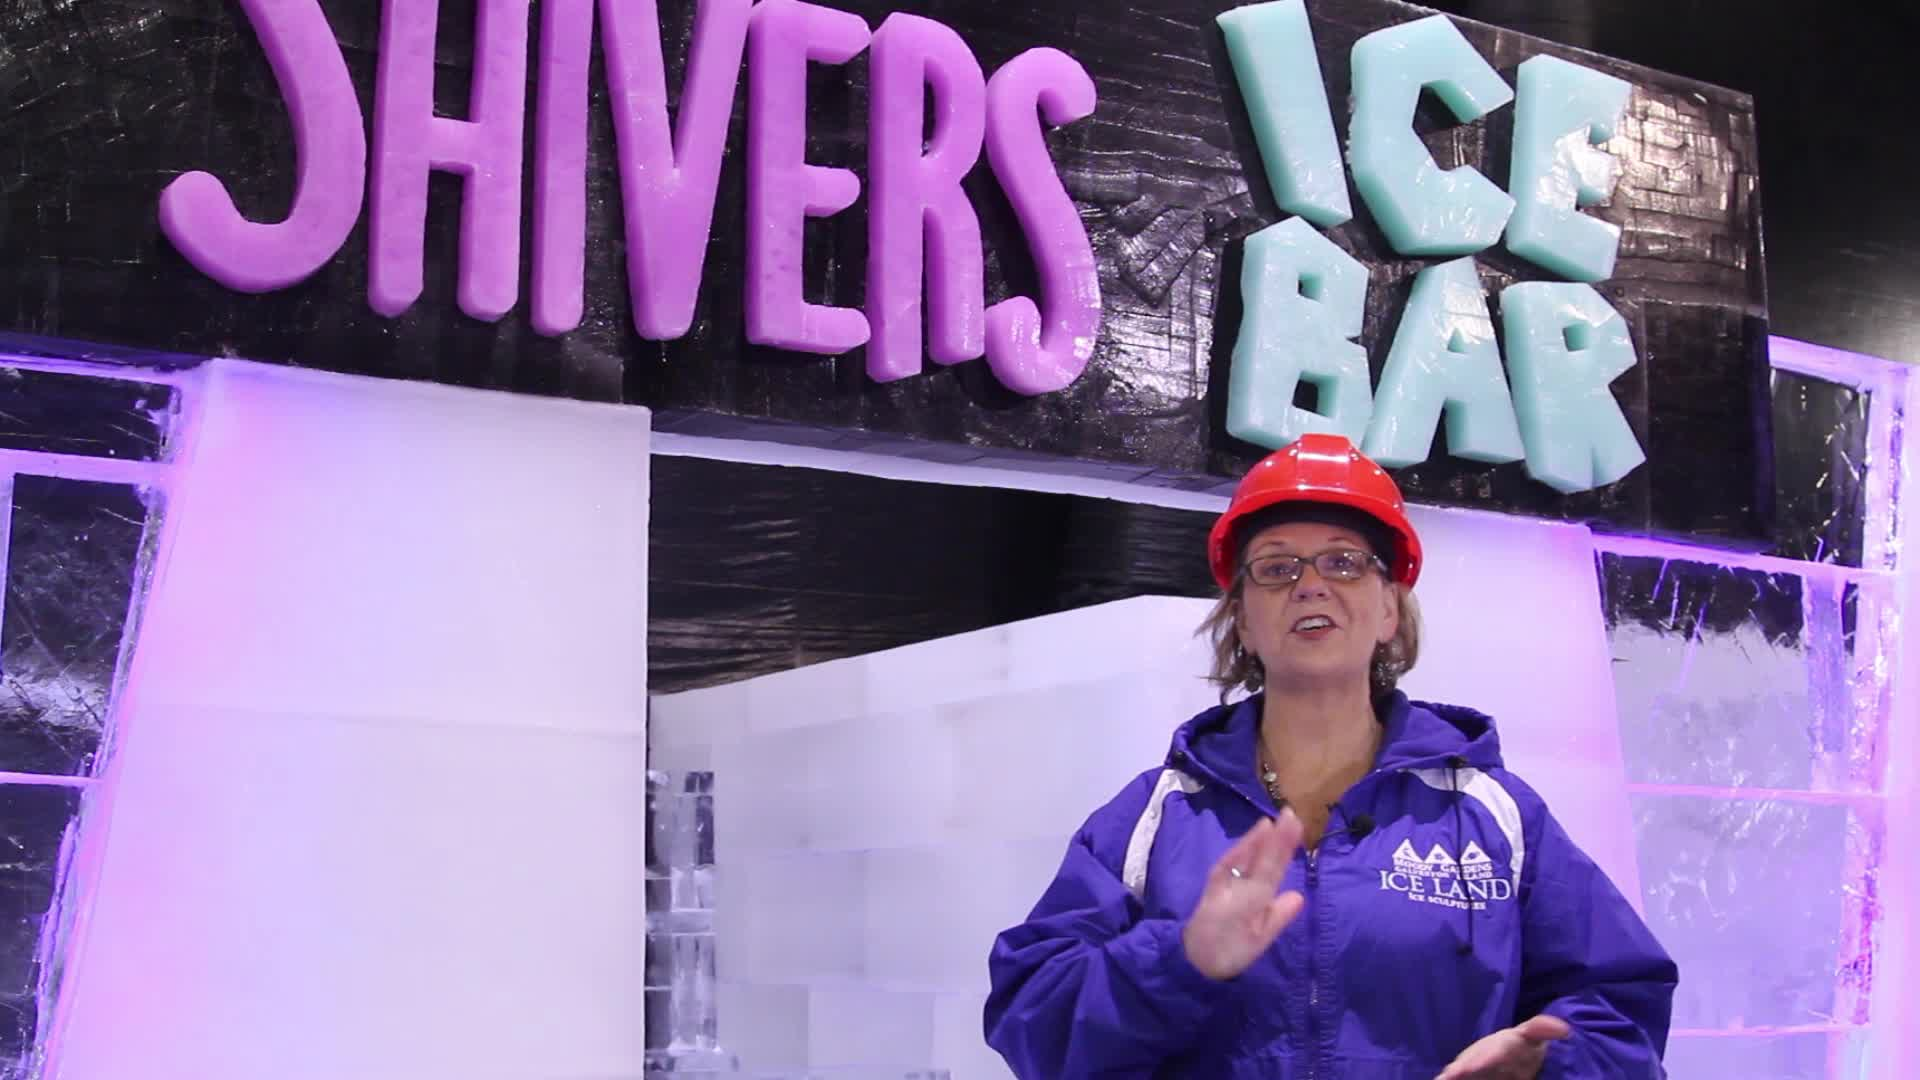 """Moody Gardens introduces Shivers Ice Bar, a fully functional bar made completely of ice and a new Caribbean Christmas theme at """"ICE LAND: Ice Sculptures"""" when it opens for the holiday season Nov. 12 - Jan. 8 in Galveston, TX."""